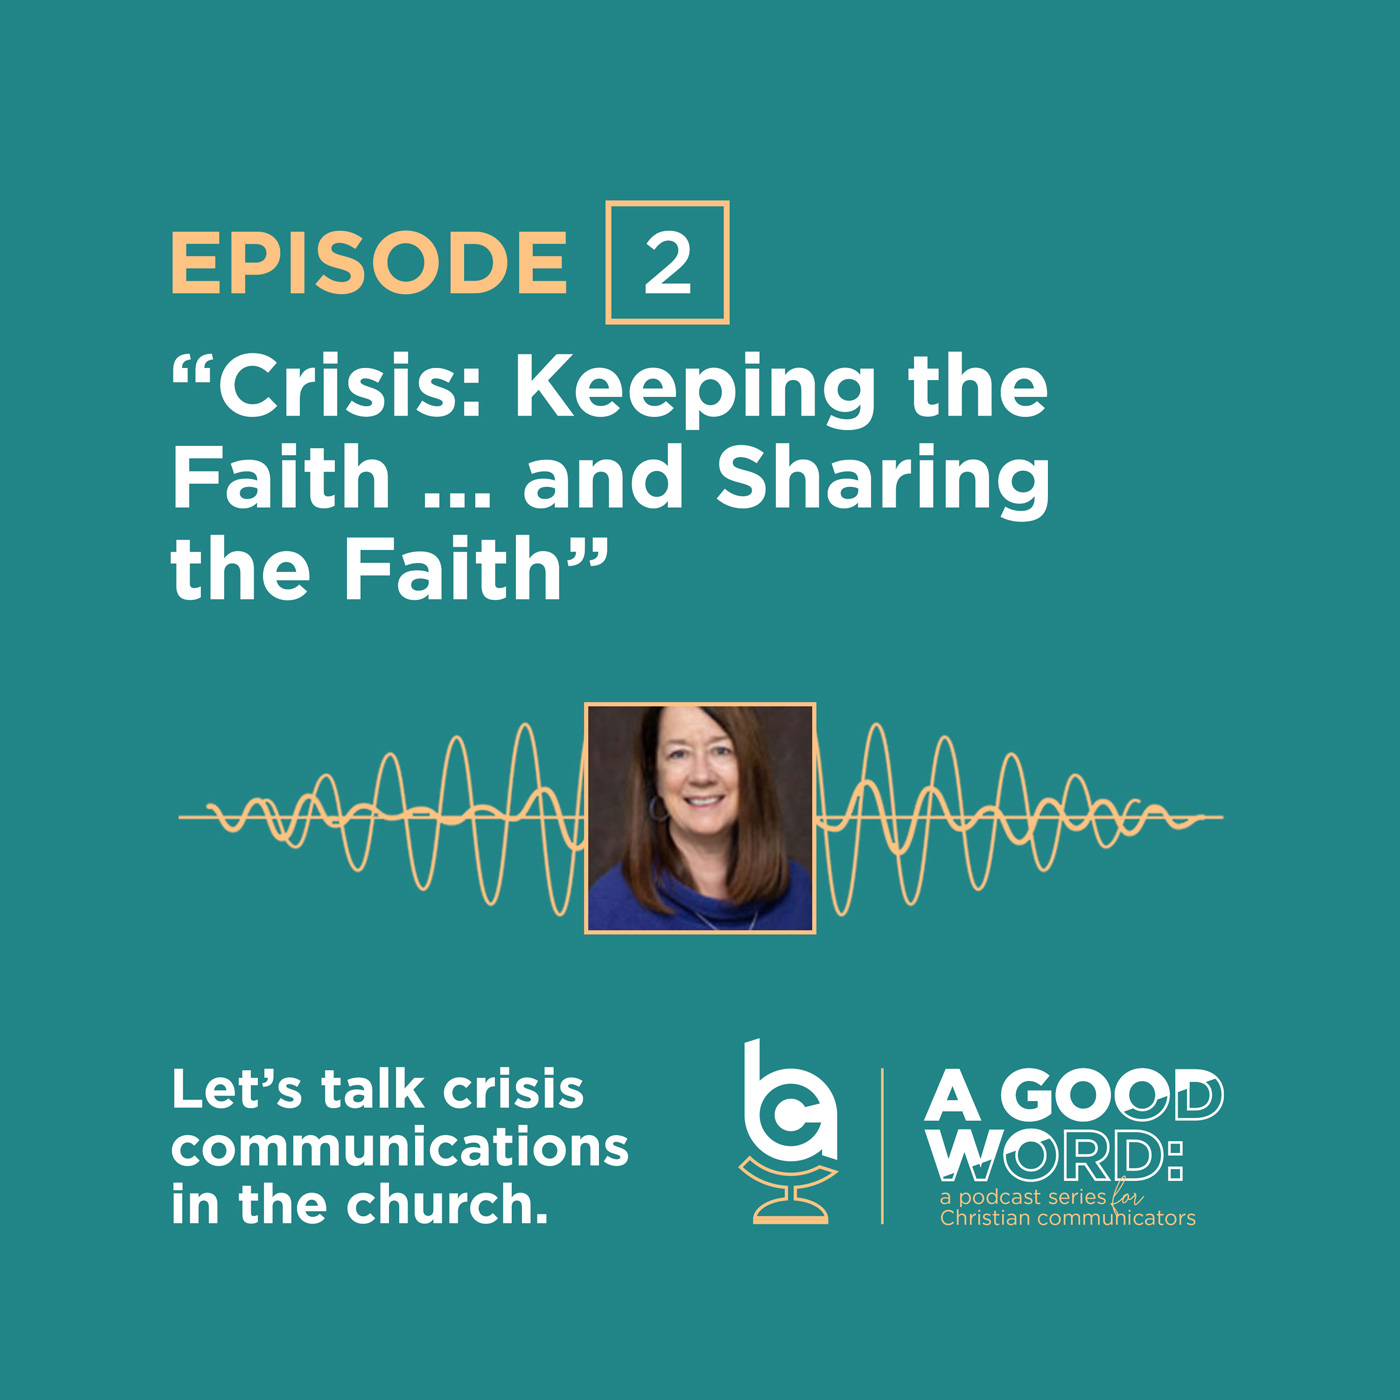 Episode 2: Crisis: Keeping the Faith...and Sharing the Faith